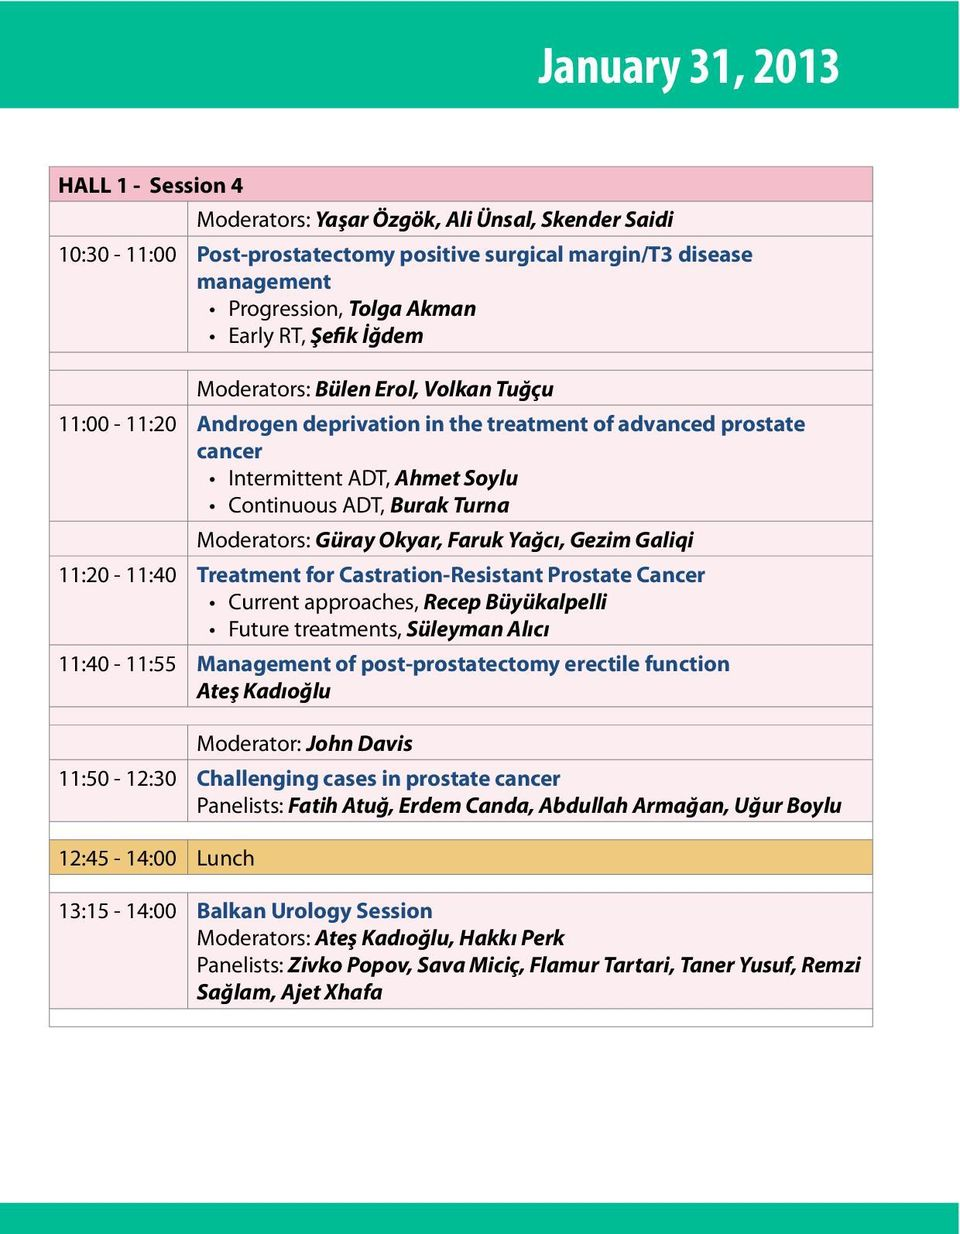 Güray Okyar, Faruk Yağcı, Gezim Galiqi 11:20-11:40 Treatment for Castration-Resistant Prostate Cancer Current approaches, Recep Büyükalpelli Future treatments, Süleyman Alıcı 11:40-11:55 Management